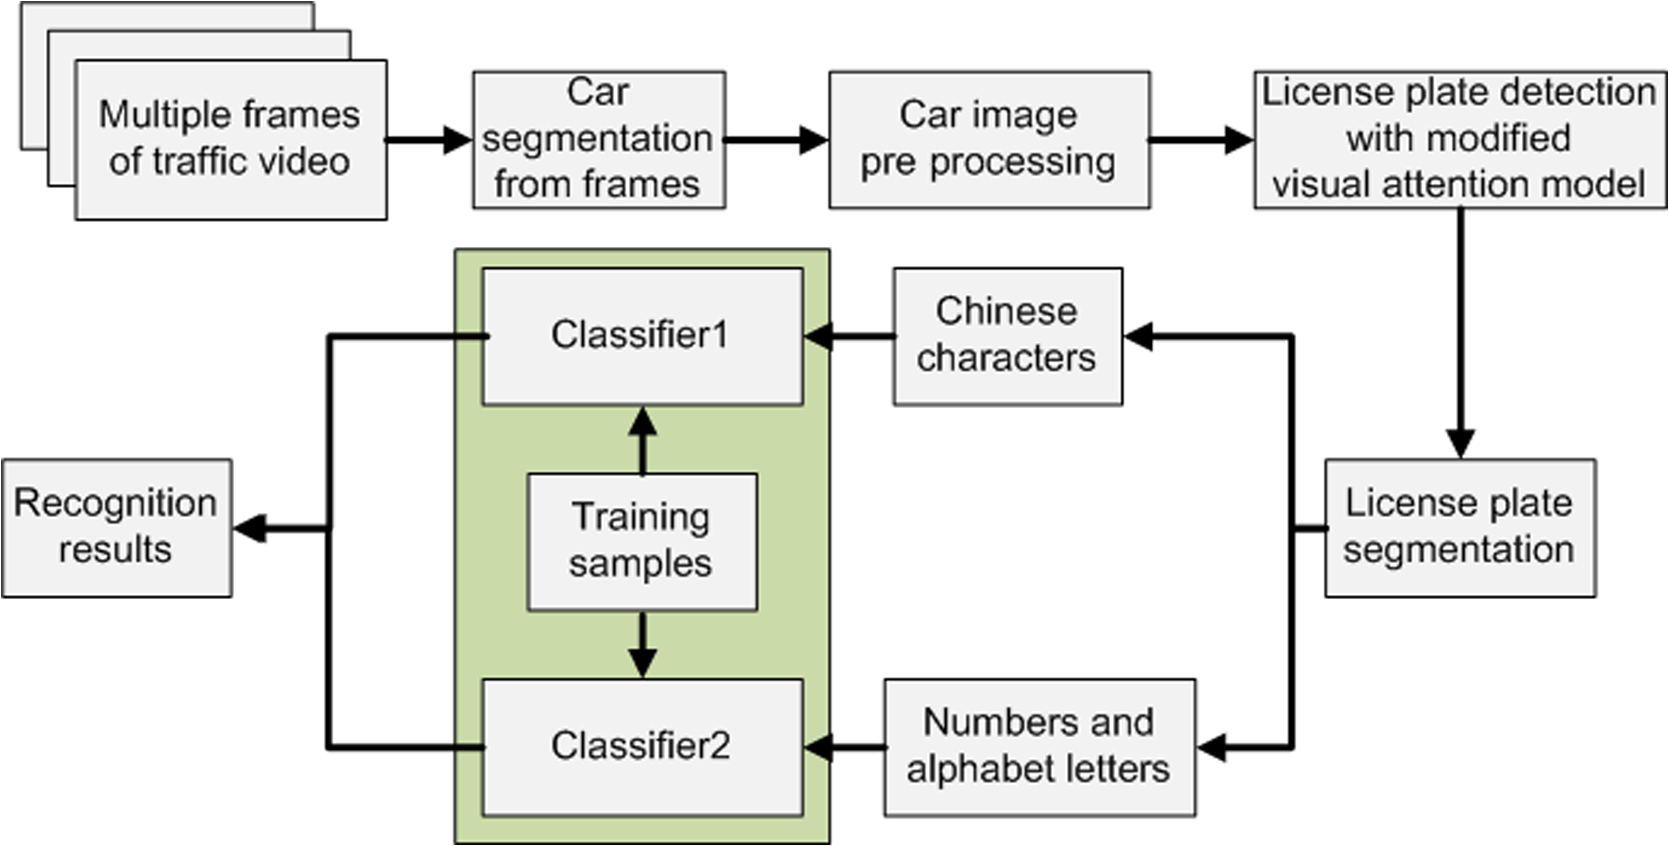 Vehicle license plate recognition using visual attention model and